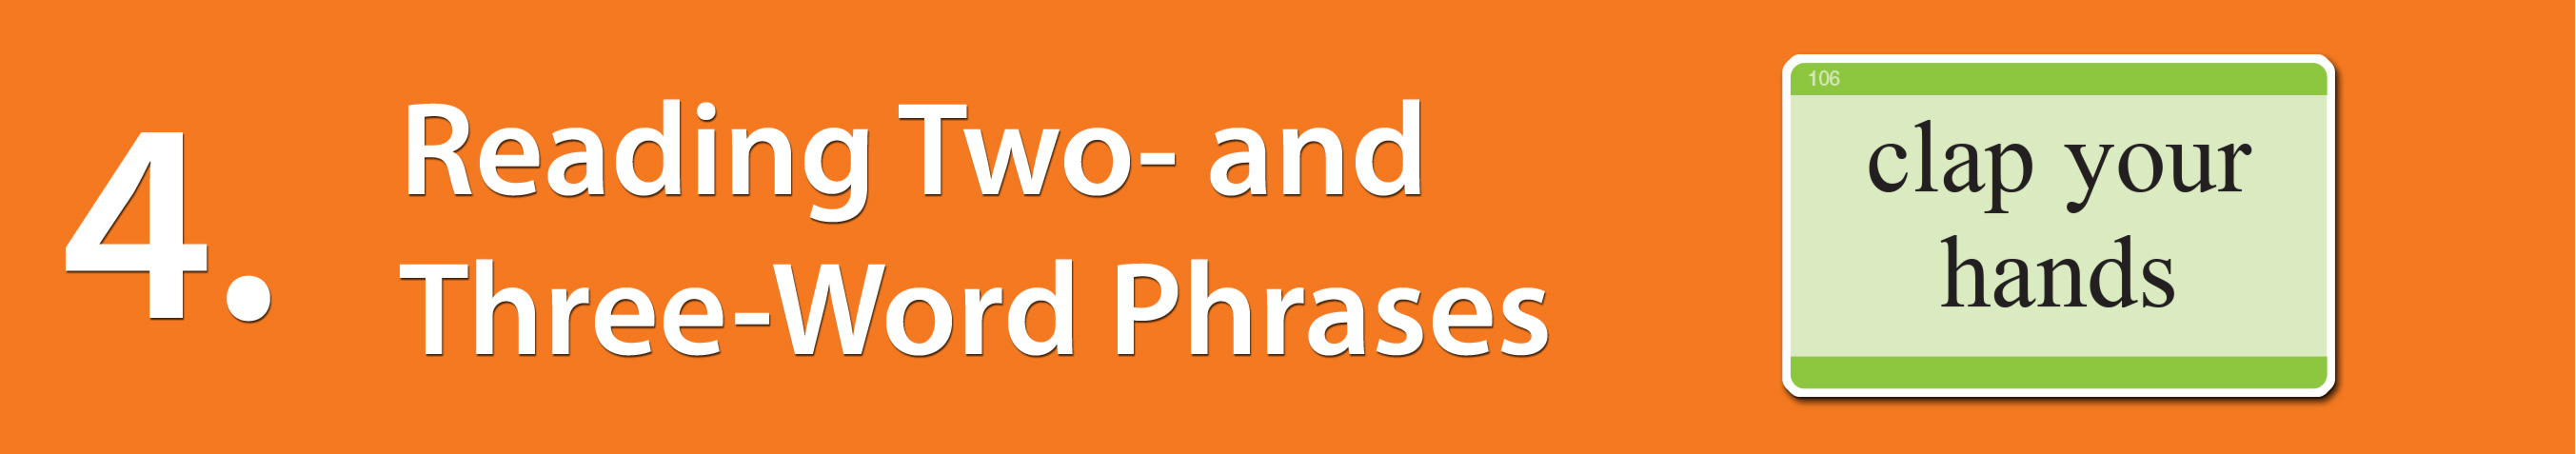 Milestone 4: Reading Two- and Three-Word Phrases